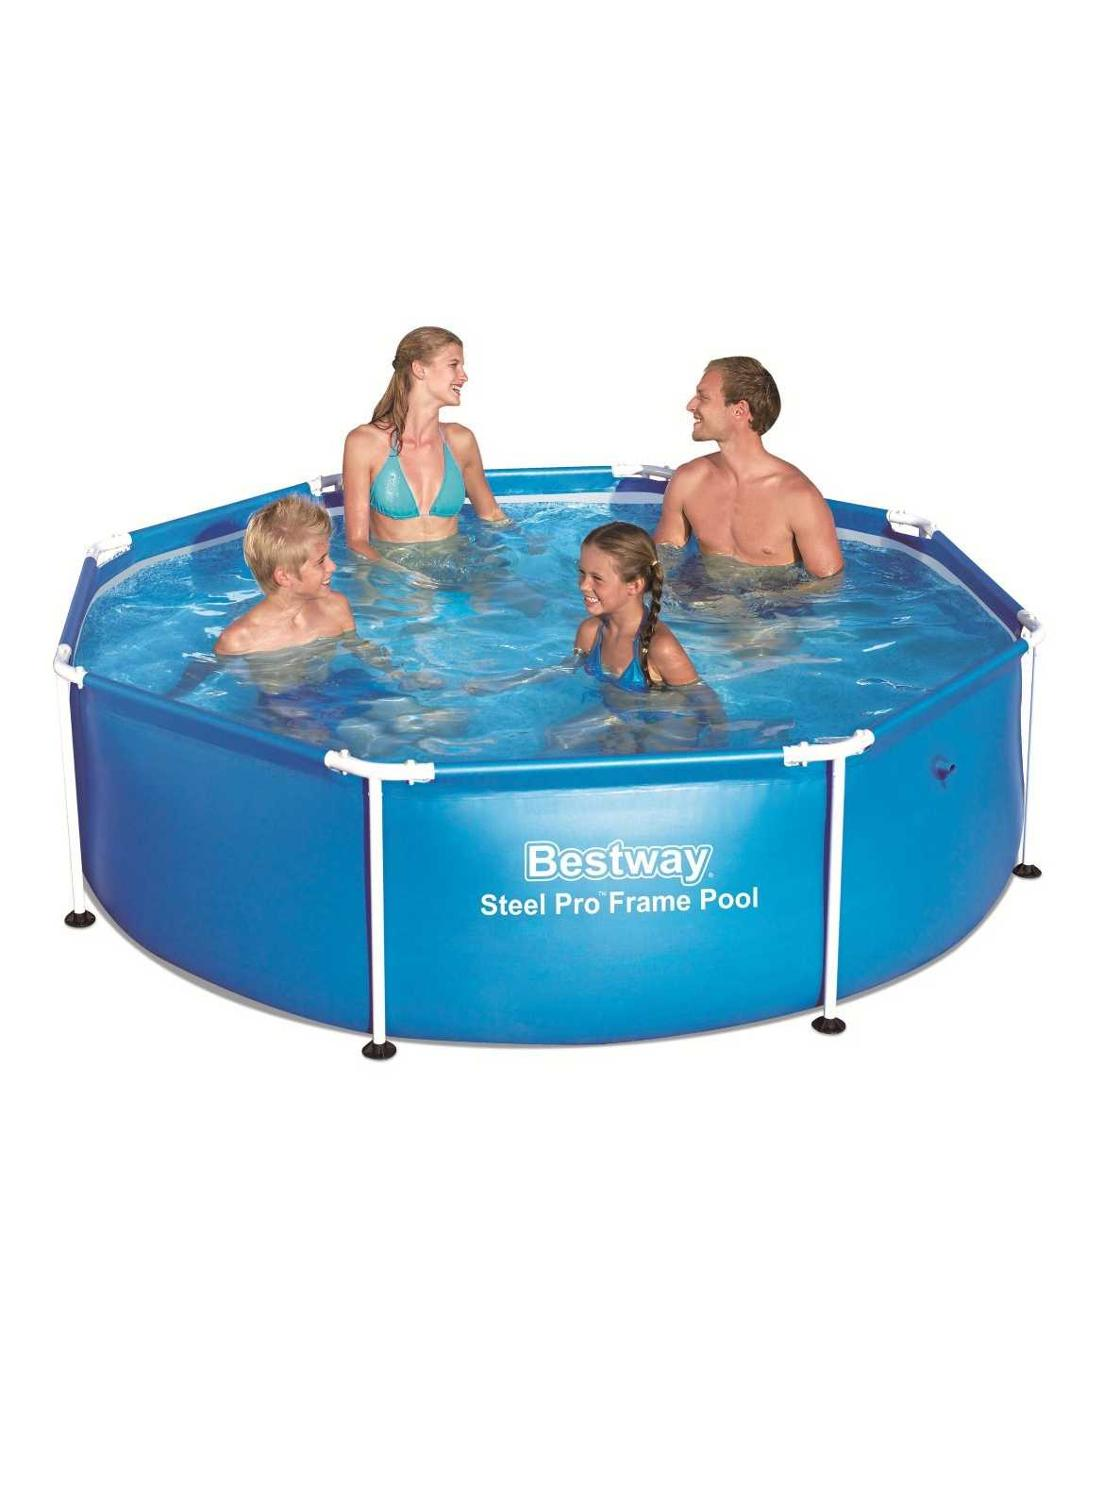 Scaffold Round Swimming Pool Outdoor Summer 244 х61 Cm, 1724 L, Bestway, Blue, For Garden, Summer, Leisure, Item No. 56431/56045